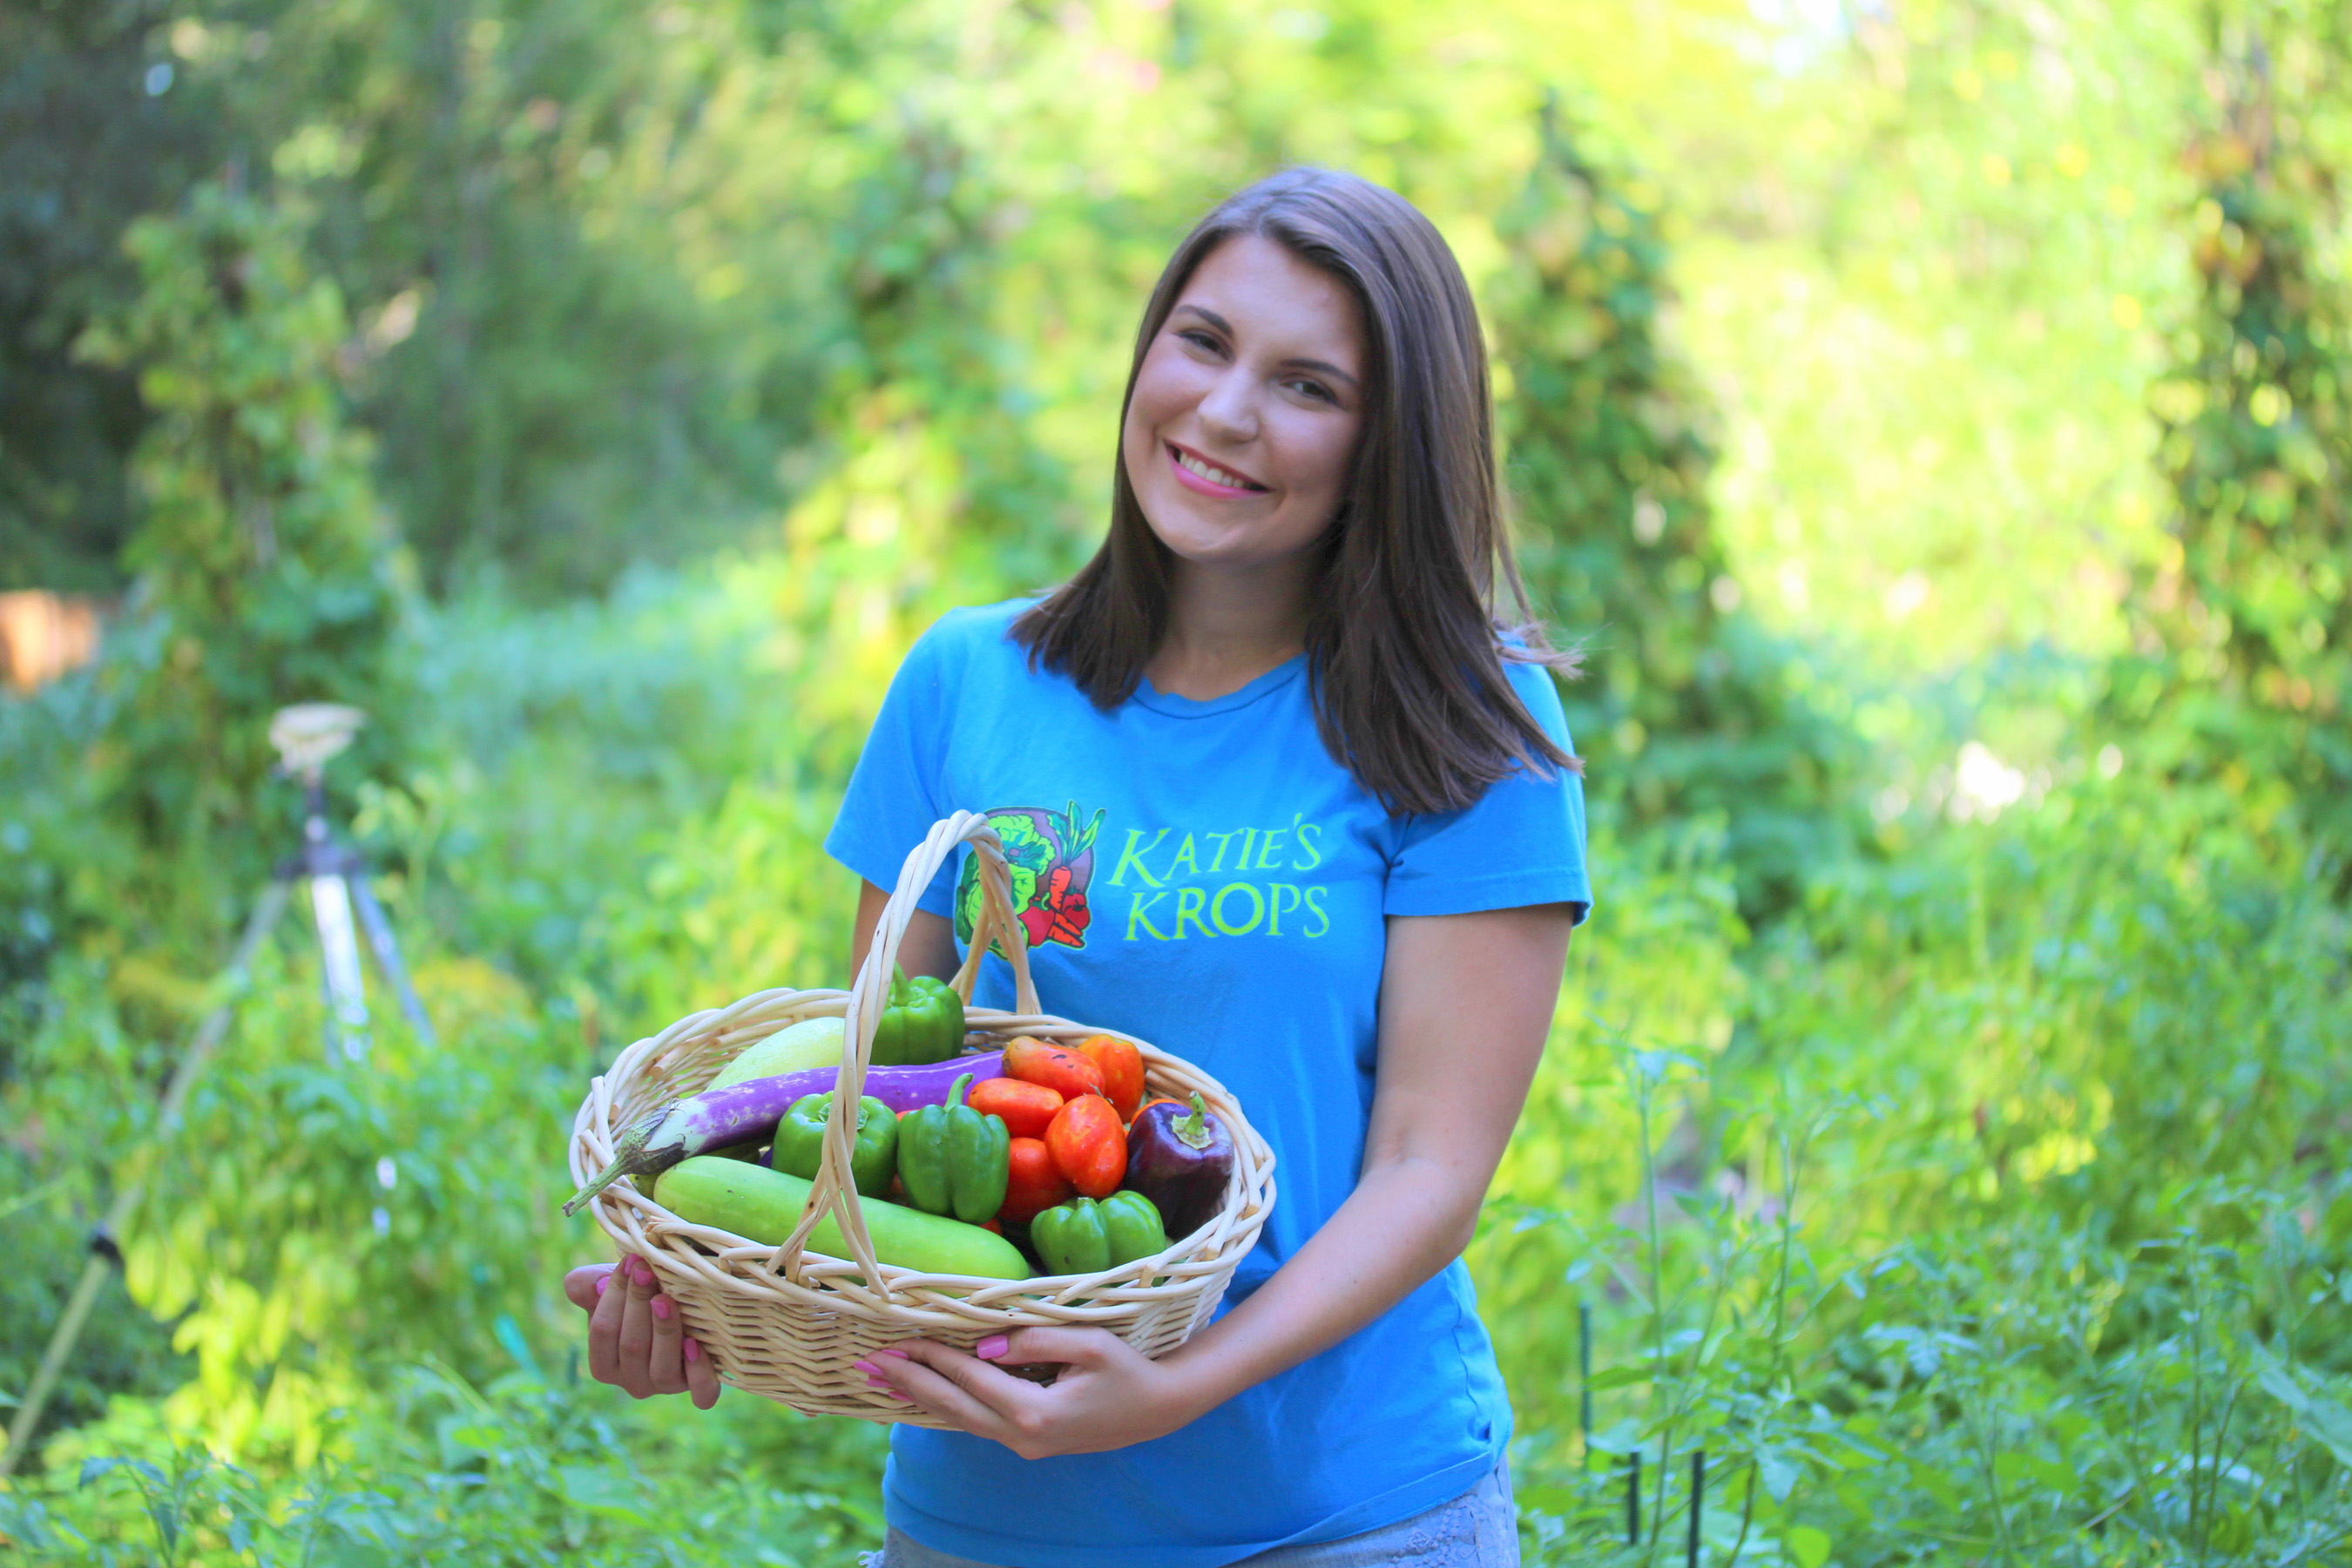 Katie Stagliano, 19-year-old founder of Katie's Krops, awarded $50,000 as grand prize winner of the General Mills Feeding Better Futures Scholars program